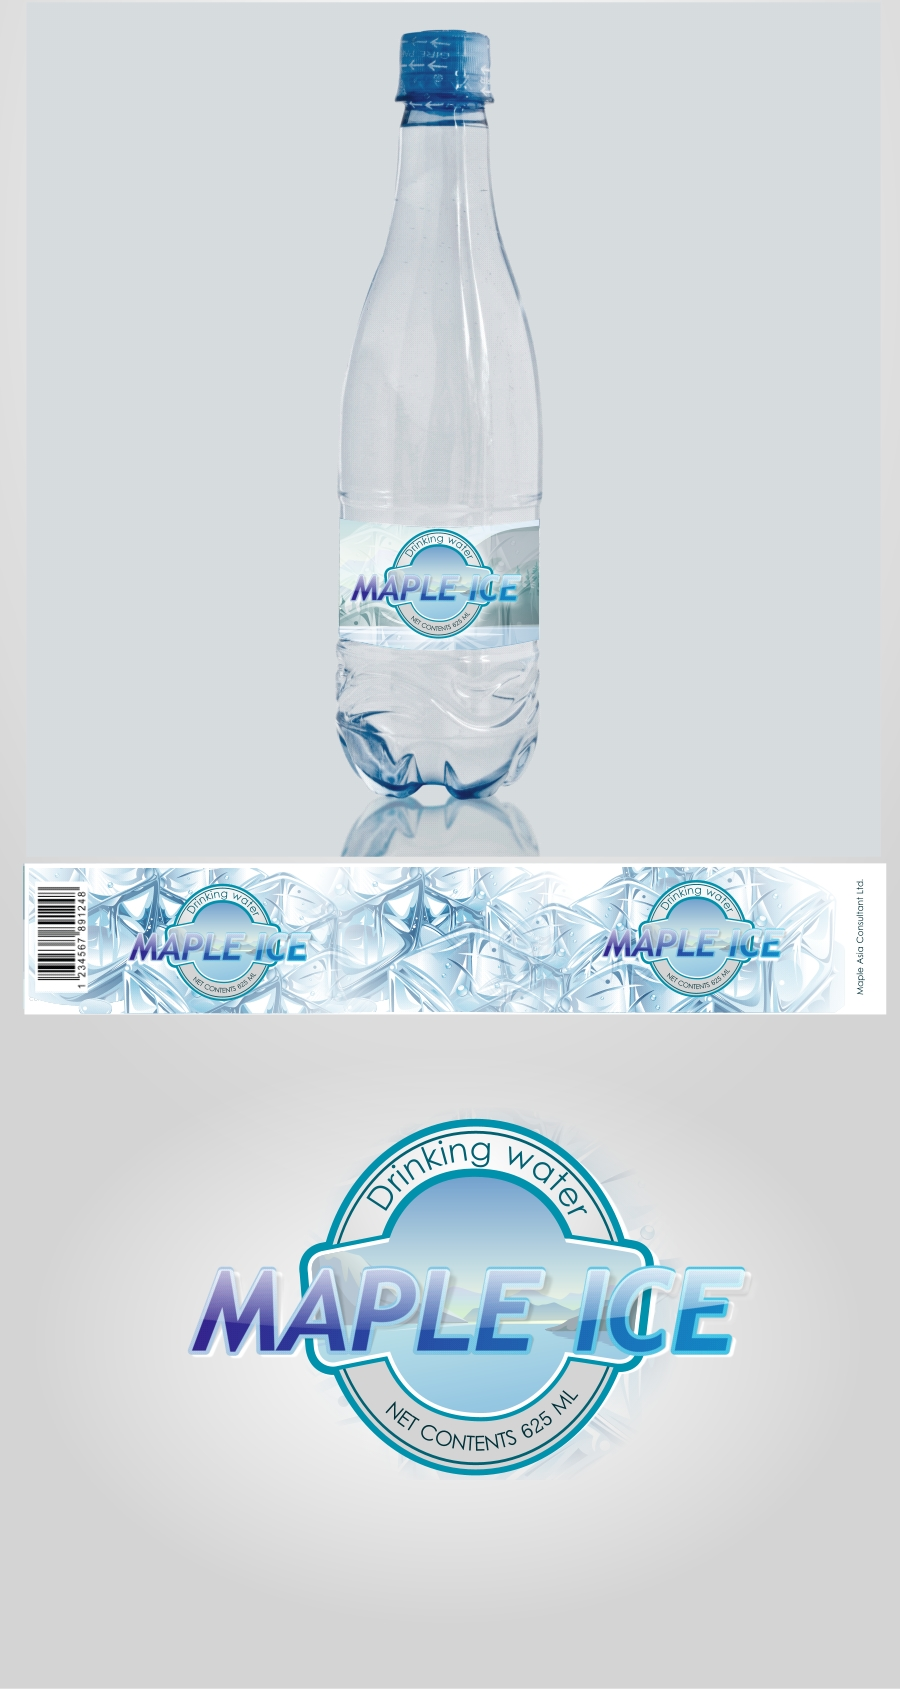 Packaging Design by Private User - Entry No. 16 in the Packaging Design Contest Unique Label/Packaging Design Wanted for Premium Bottled Water (Maple Ice).